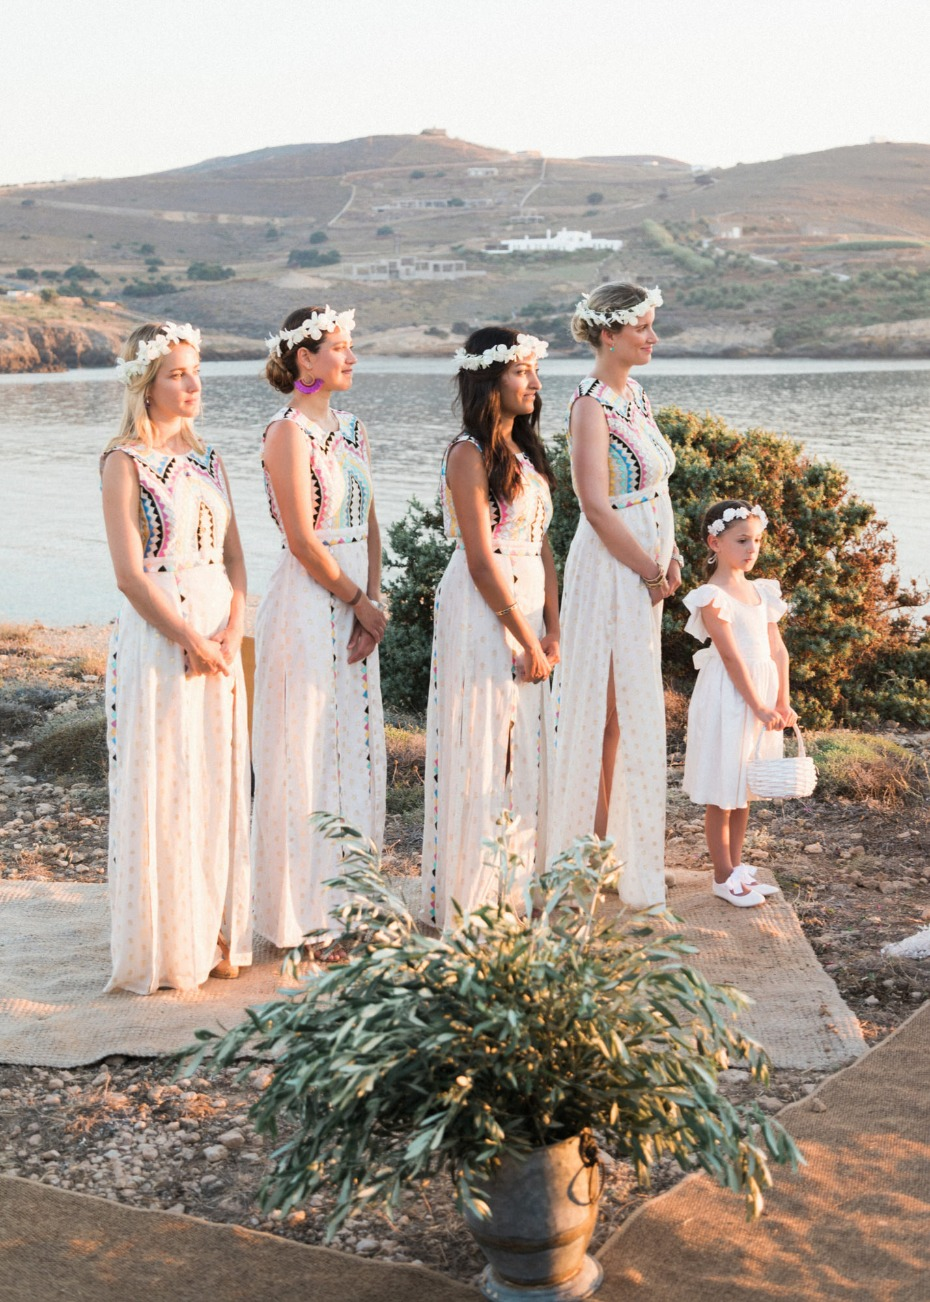 Bridesmaids in Greece